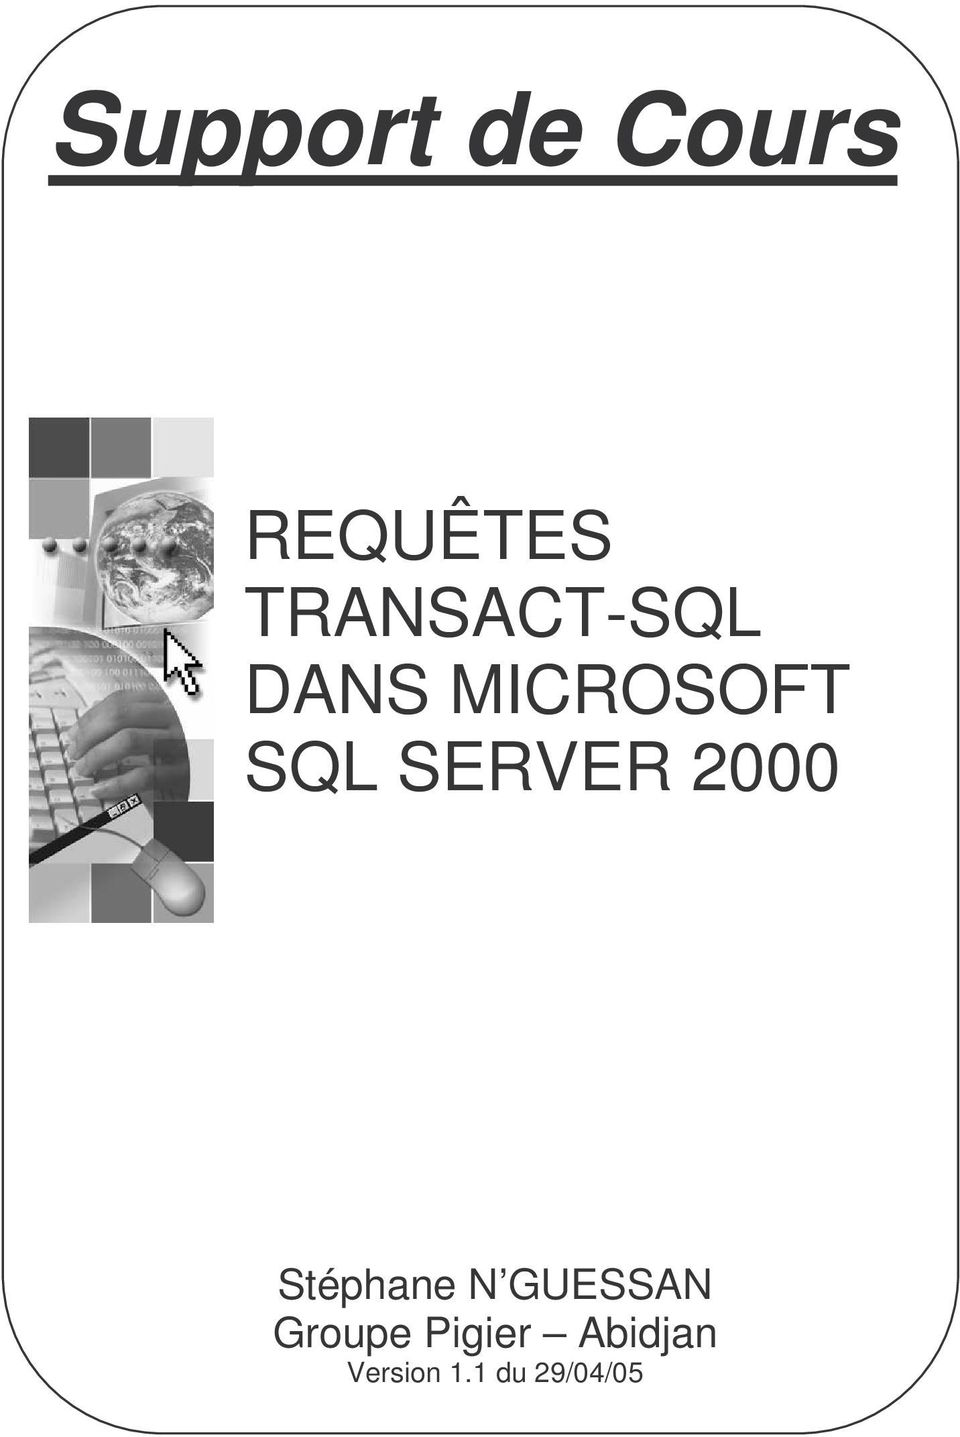 SQL Server 2019 preview release notes